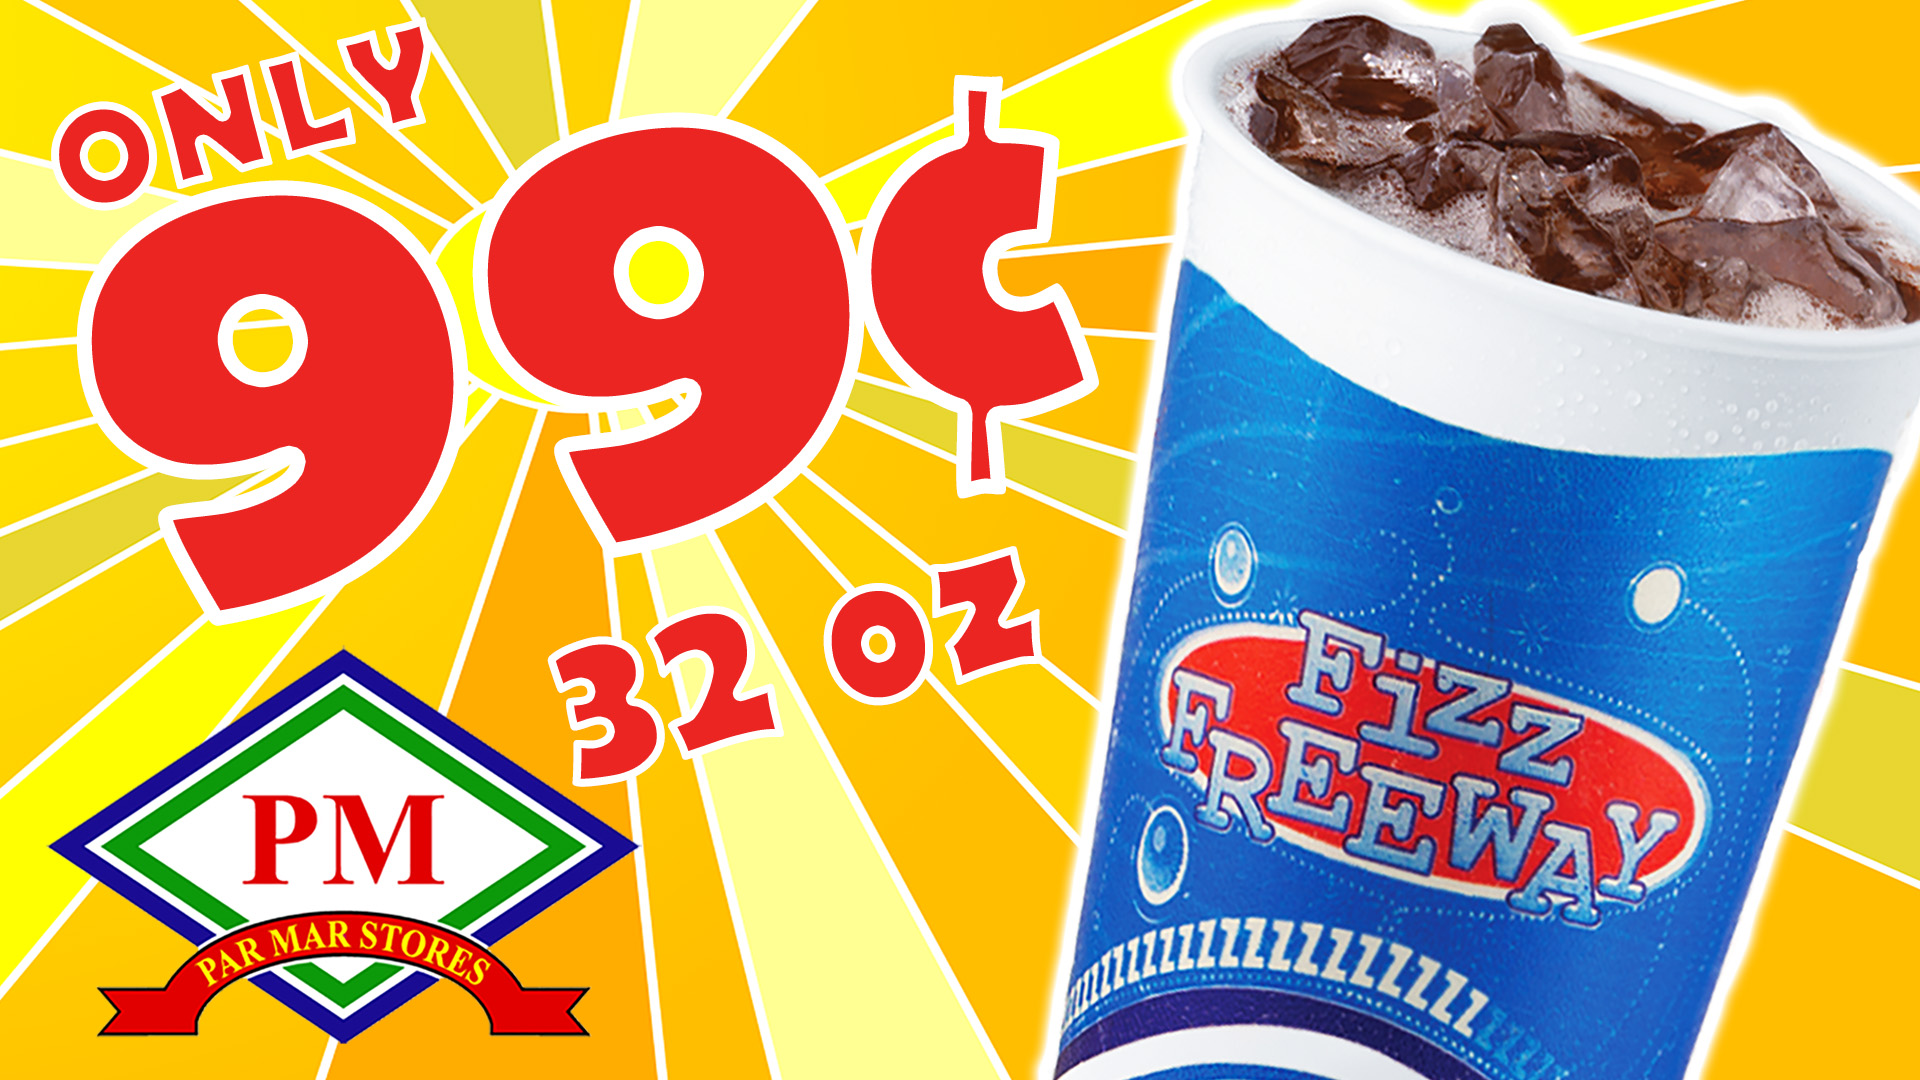 32oz – fountain – 99cents